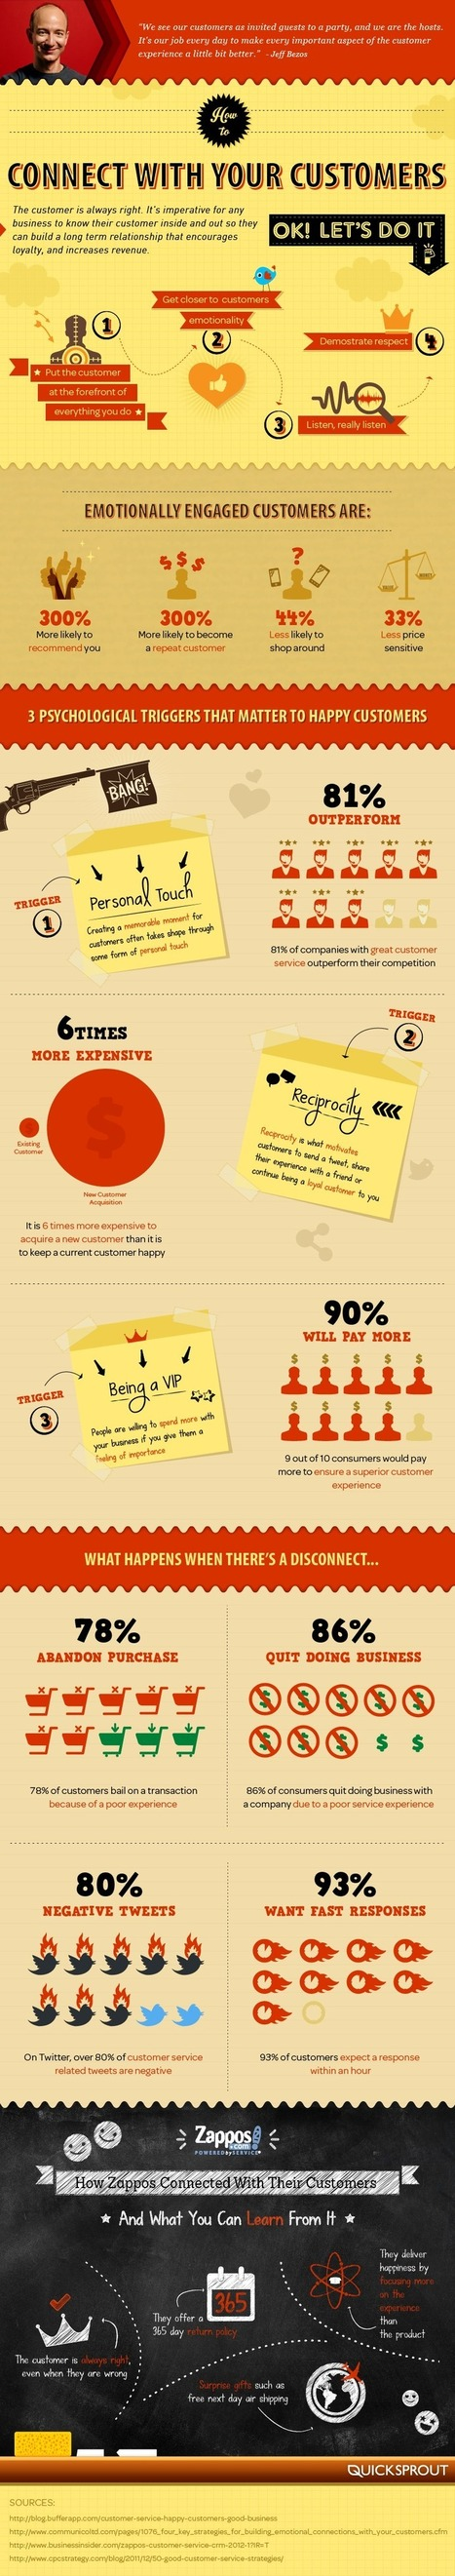 Cómo conectar con tus clientes #infografia #infographic #marketing | Seo, Social Media Marketing | Scoop.it